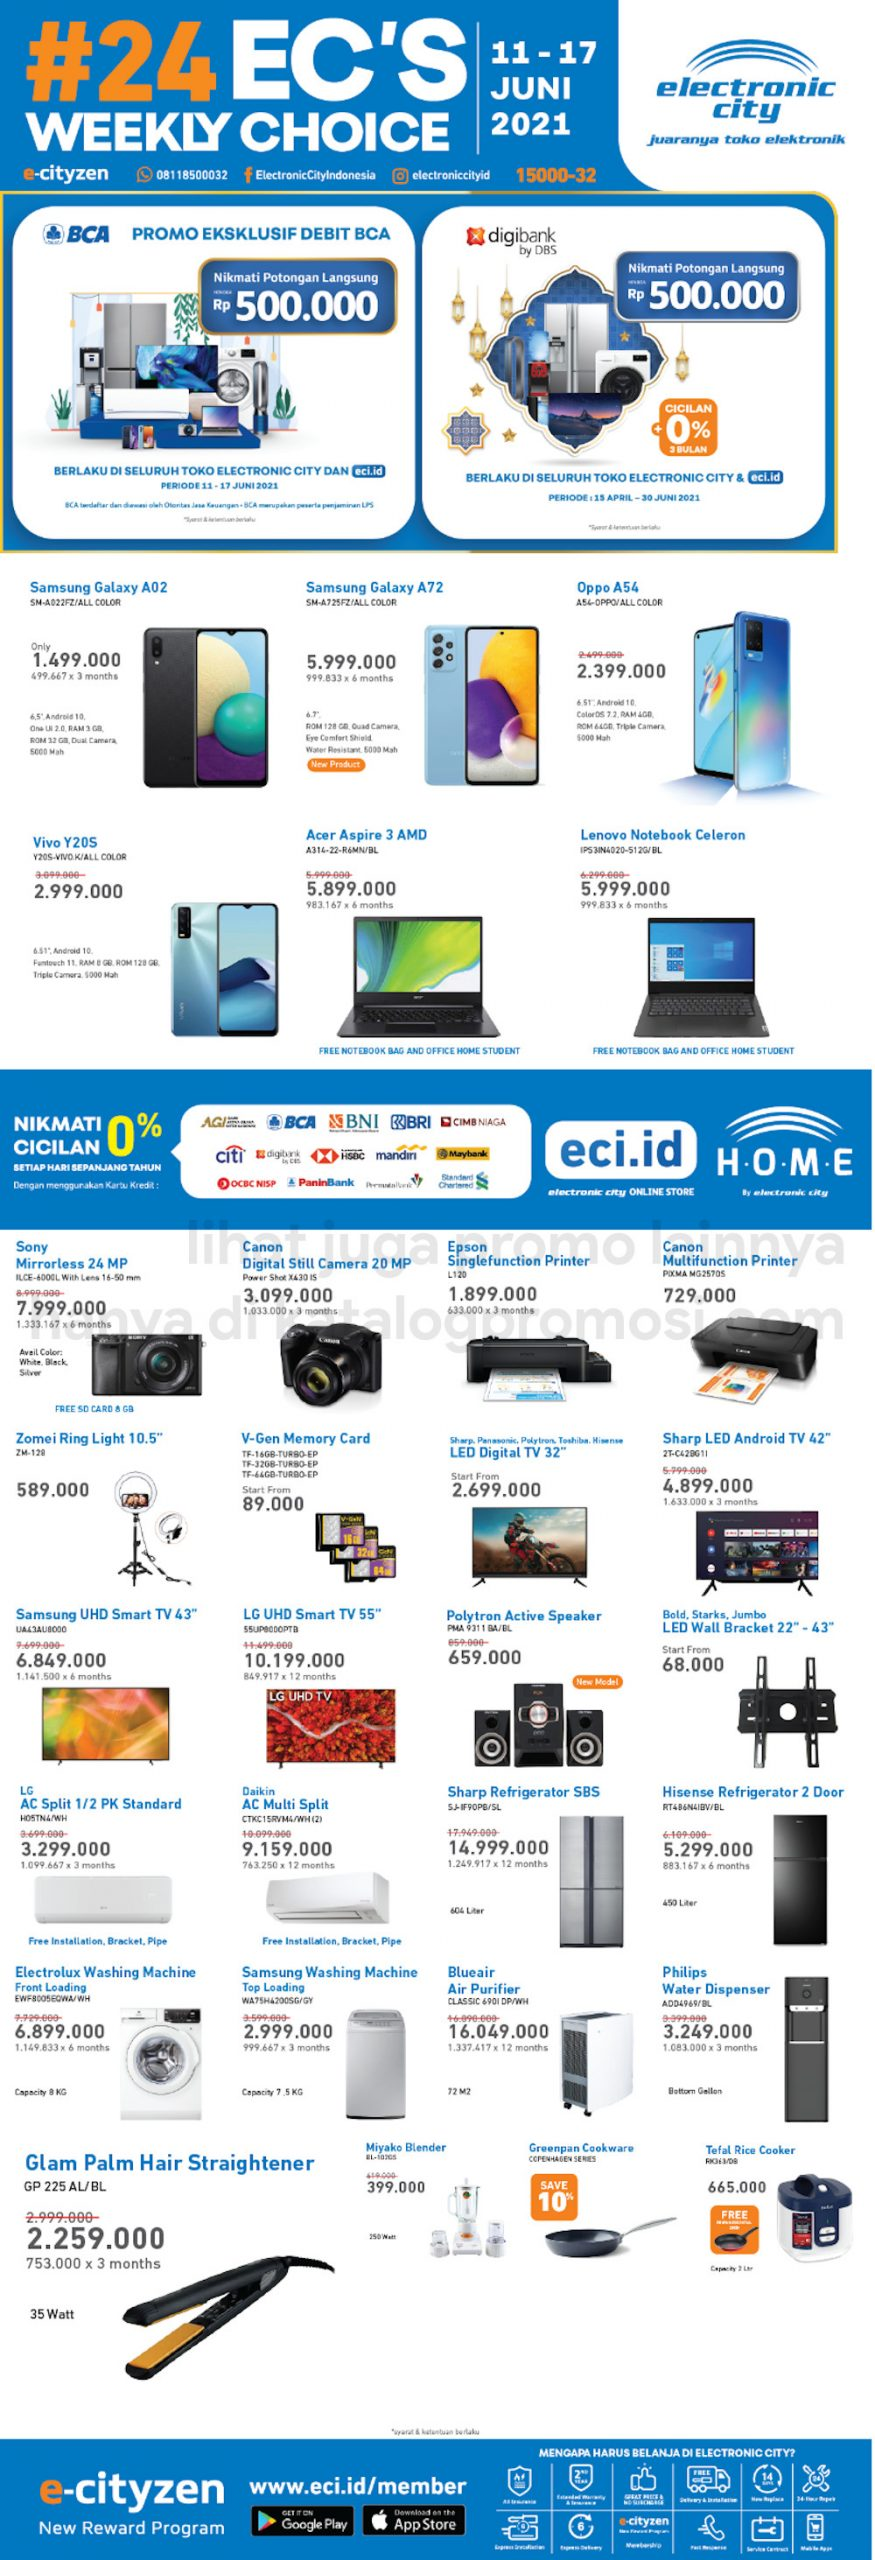 Promo Electronic City Katalog Weekly Special periode 11-17 Juni 2021